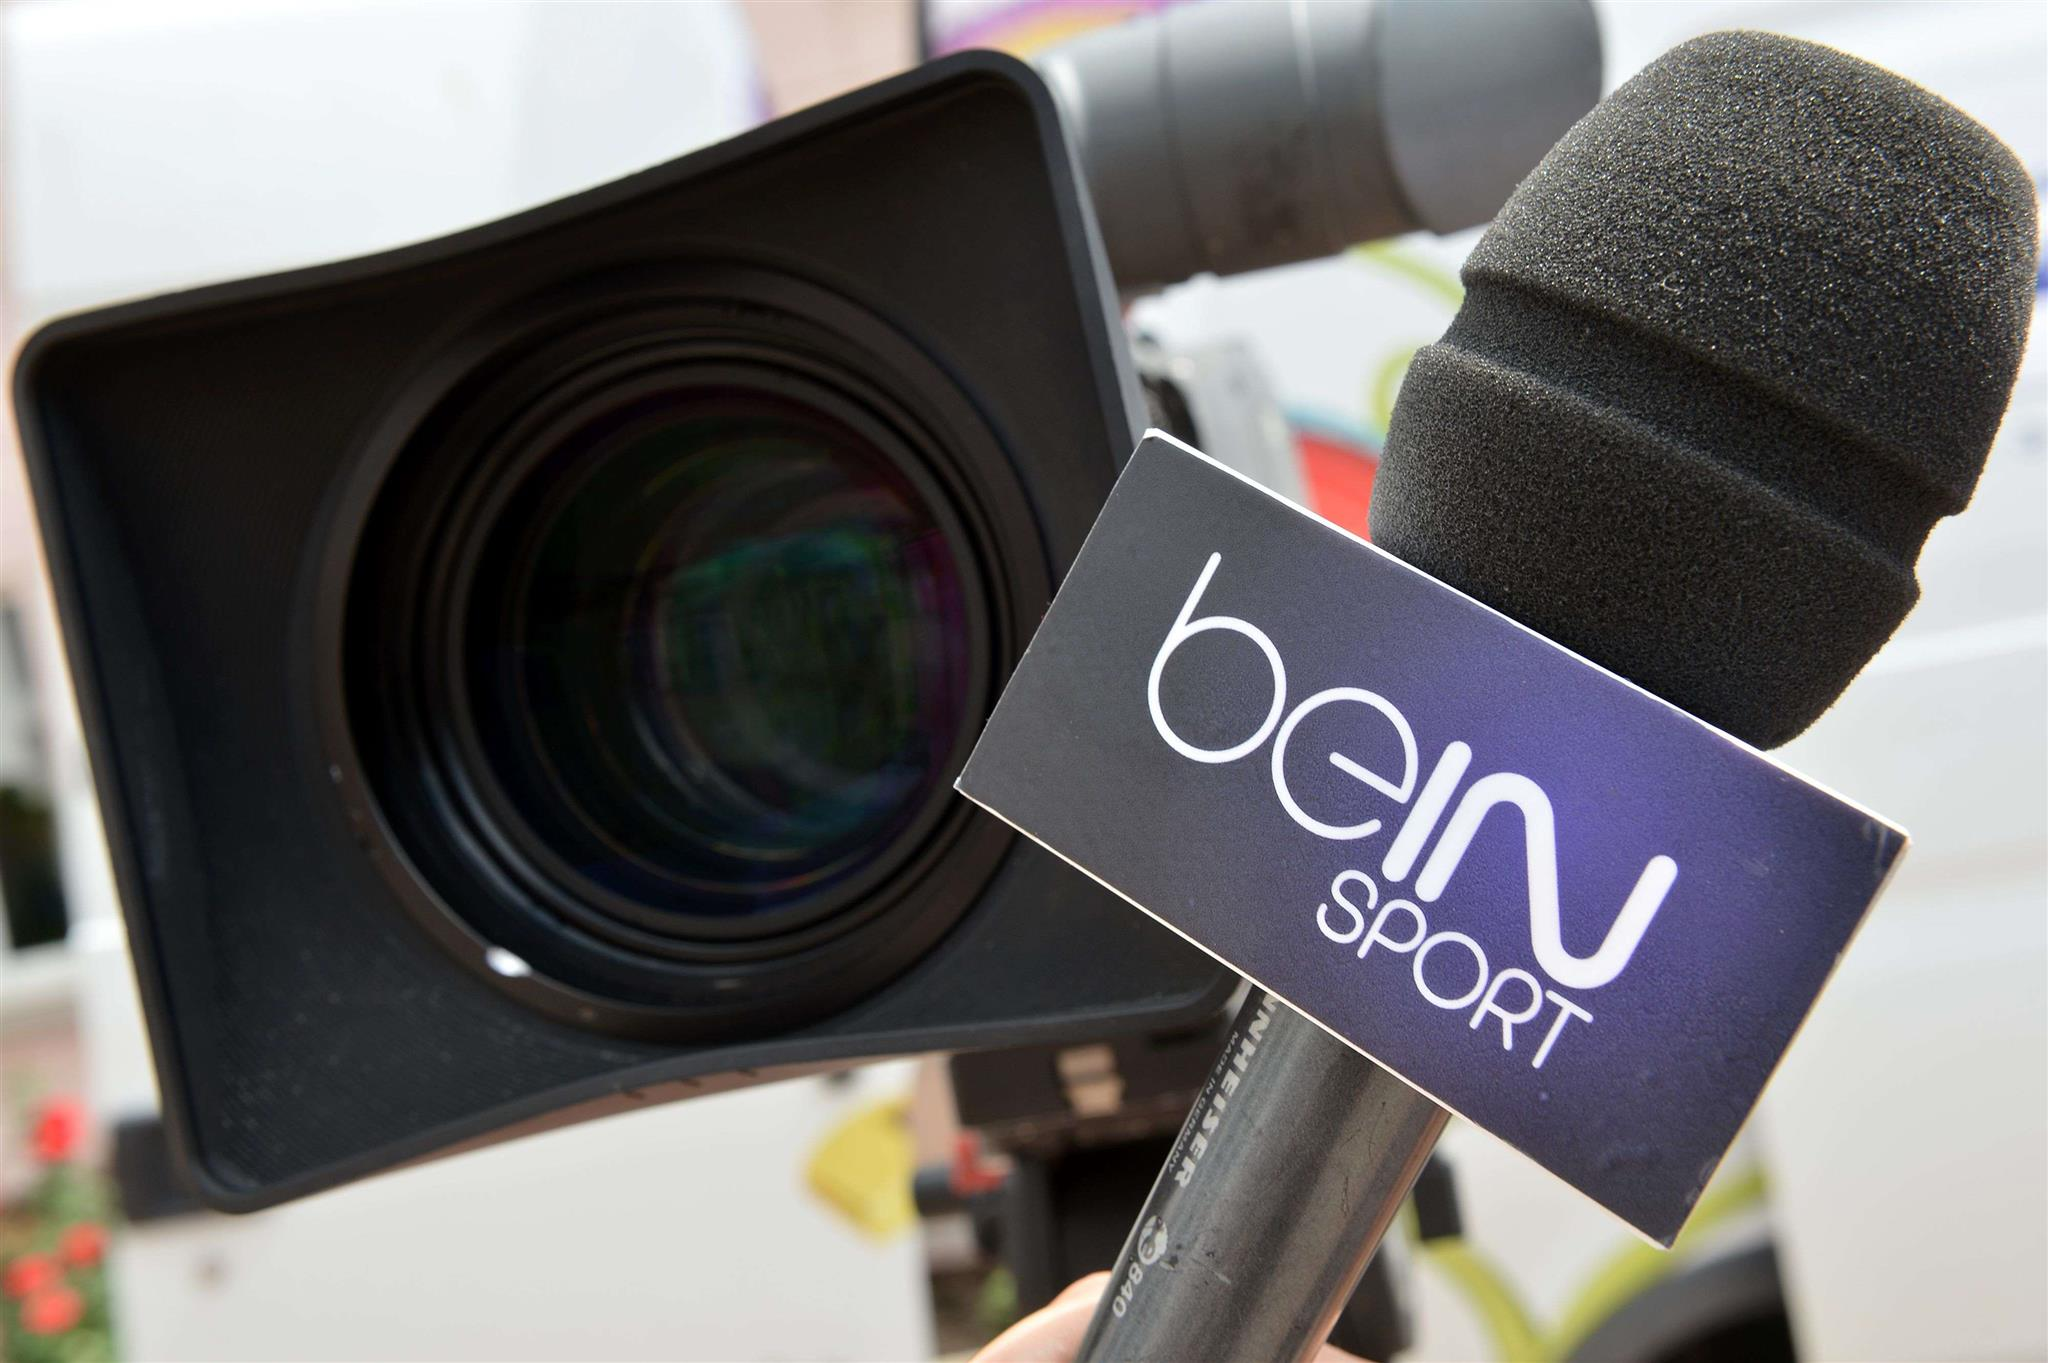 A file picture shows a microphone with the logo of the TV Sport channel beIN Sport. (AFP)